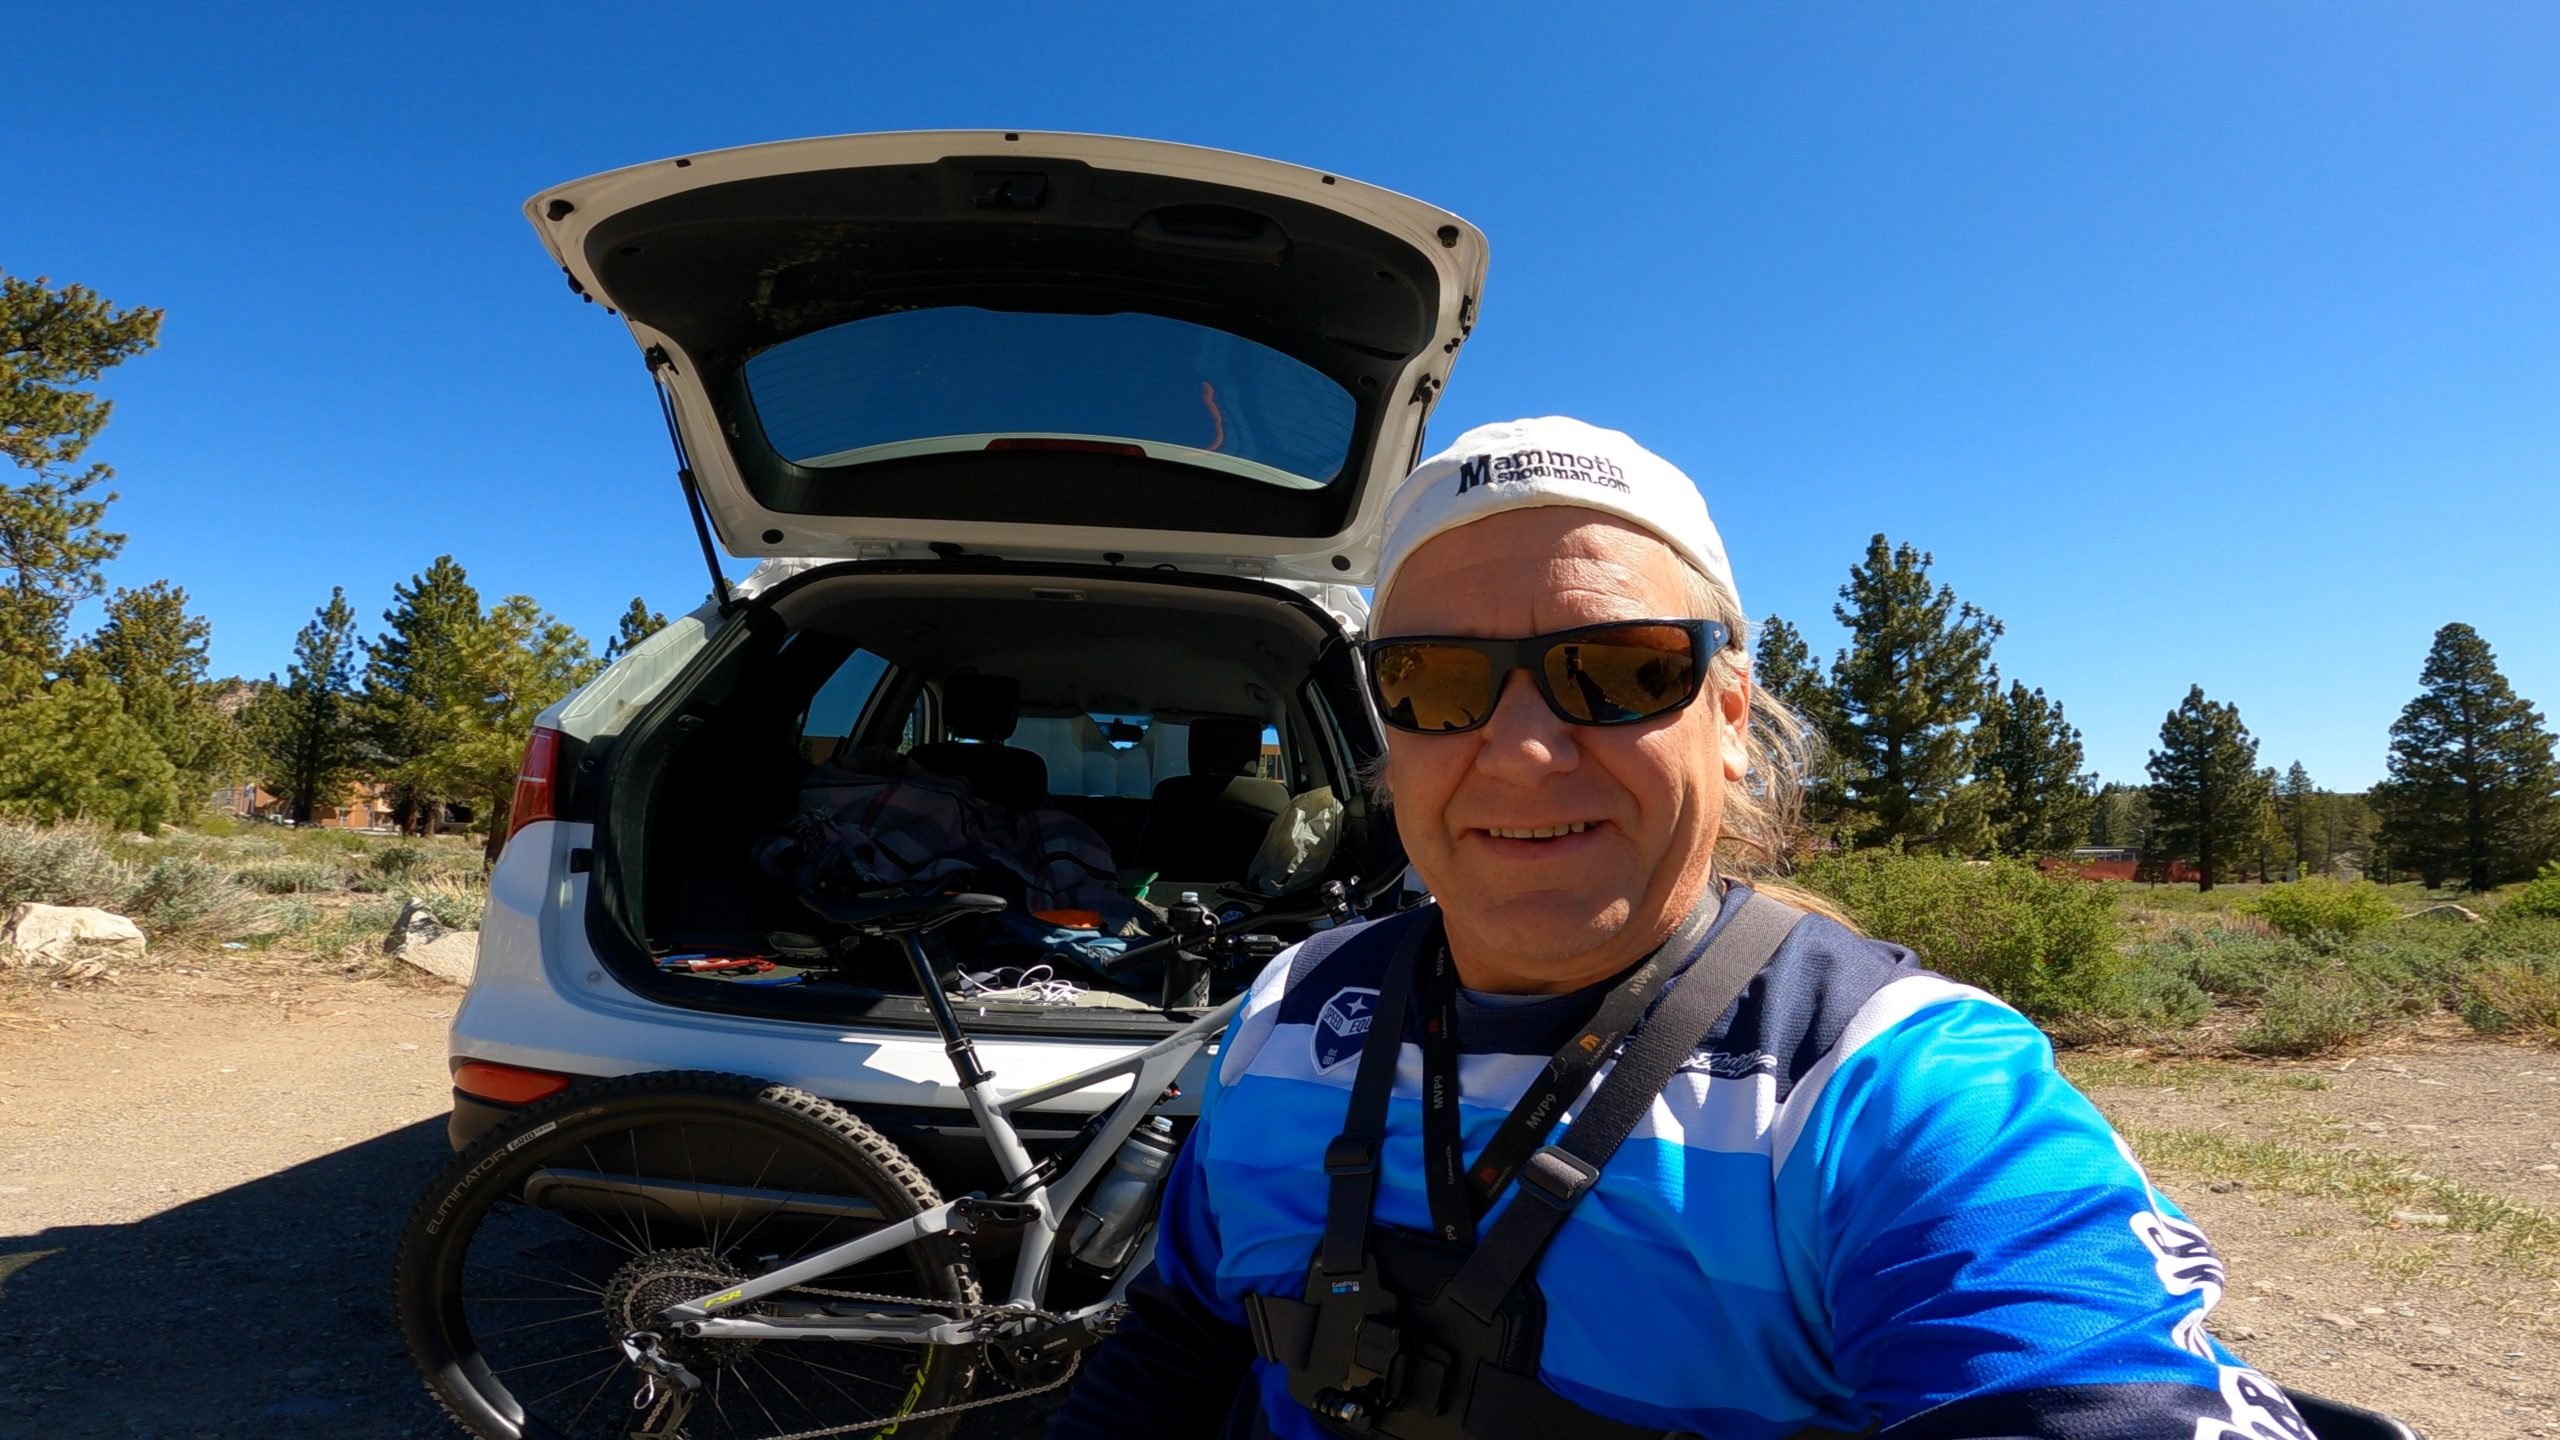 Mountain Biking out of Mammoth Lakes - May 2021 - Snowman